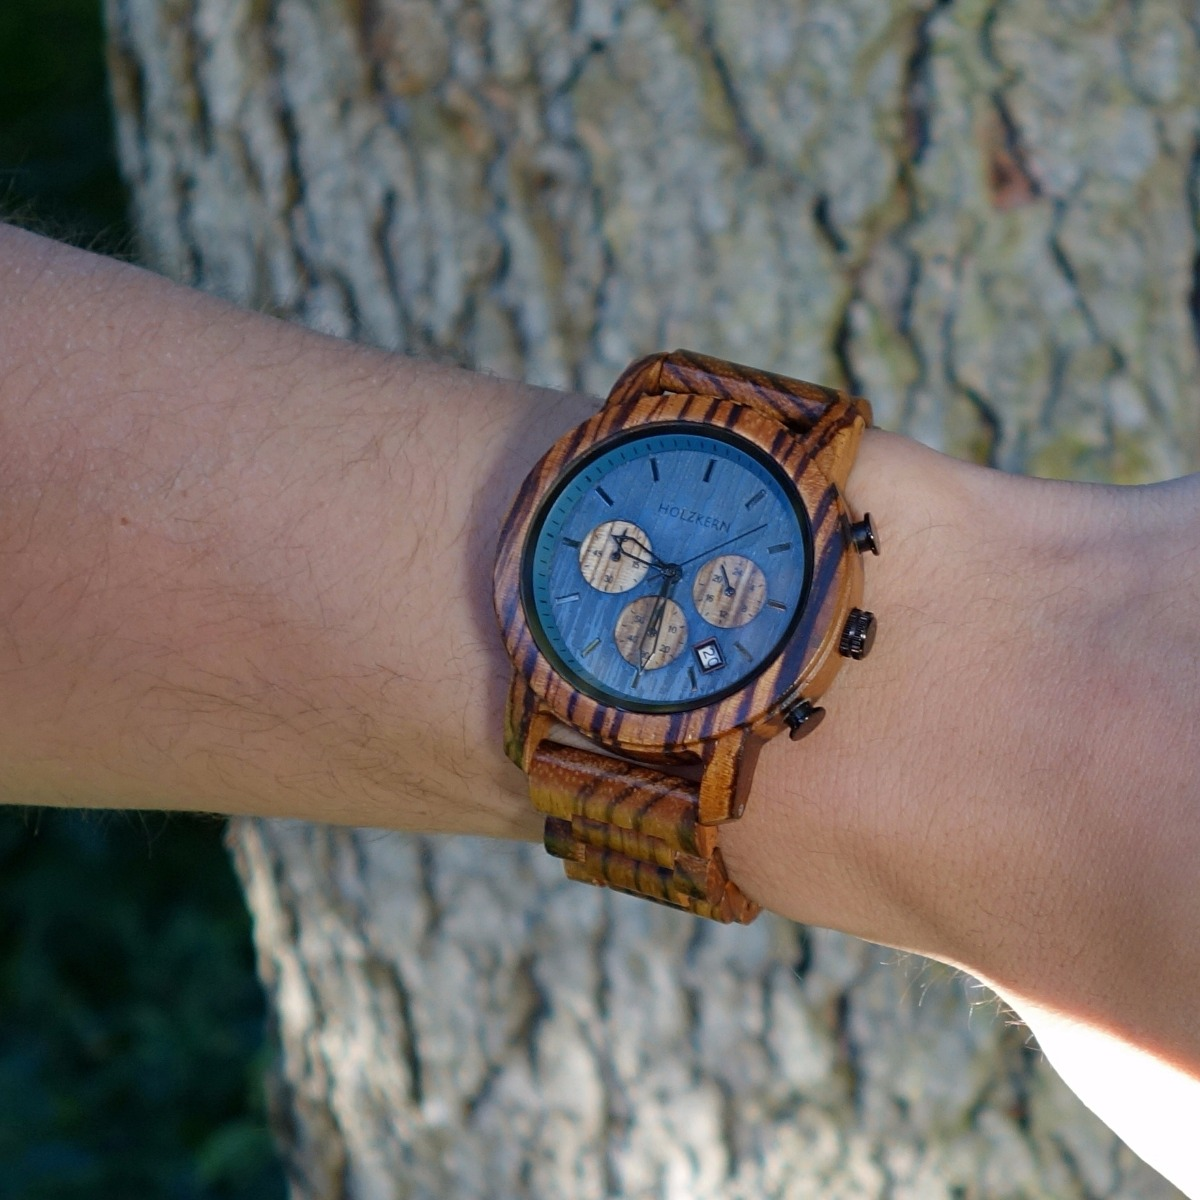 The wood watch Mountainlake, a chronograph made of zebrawood on the wrist of a man